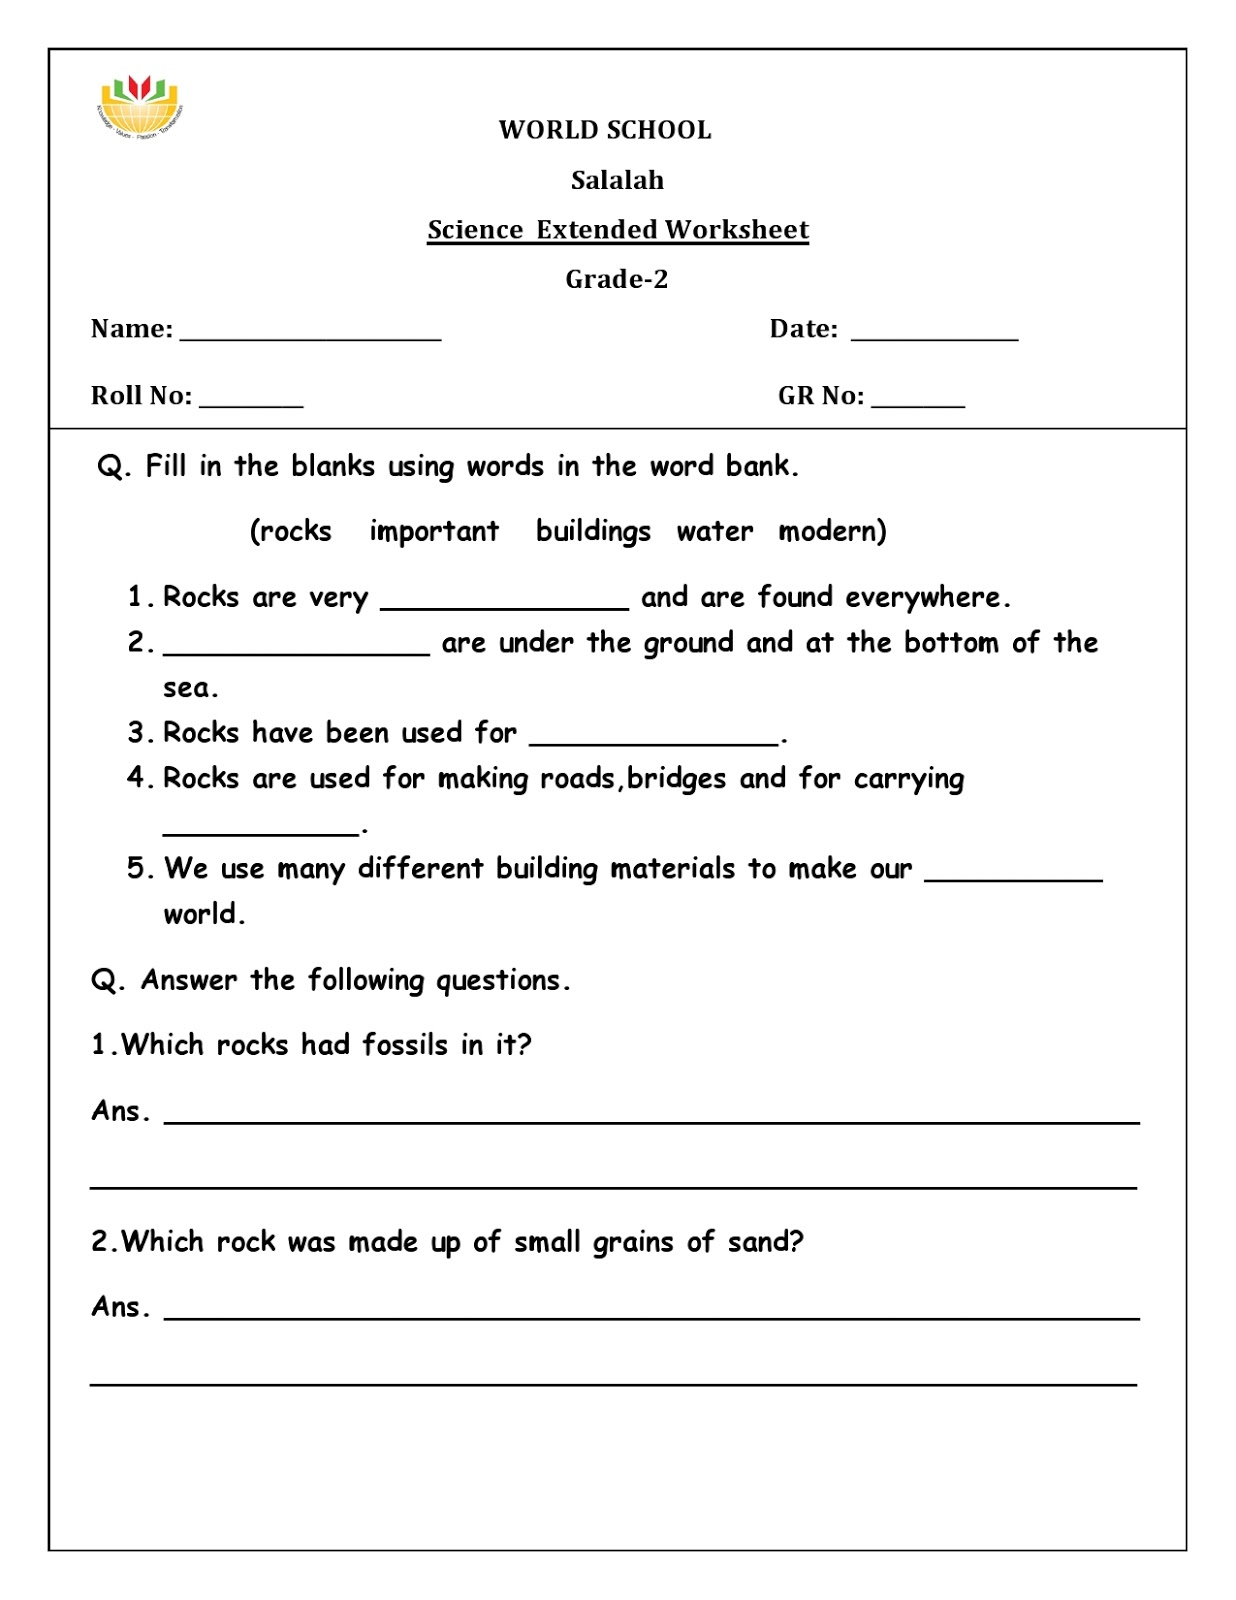 Birla World School Oman Homework For Grade 2 As On 25 02